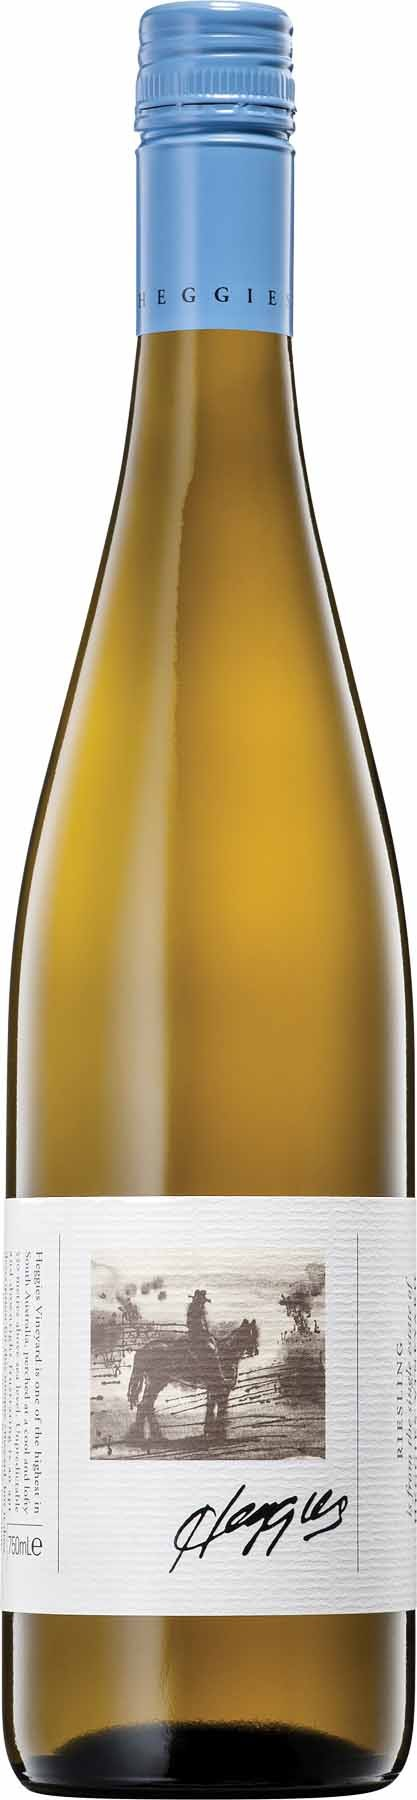 Heggies Vineyard Riesling